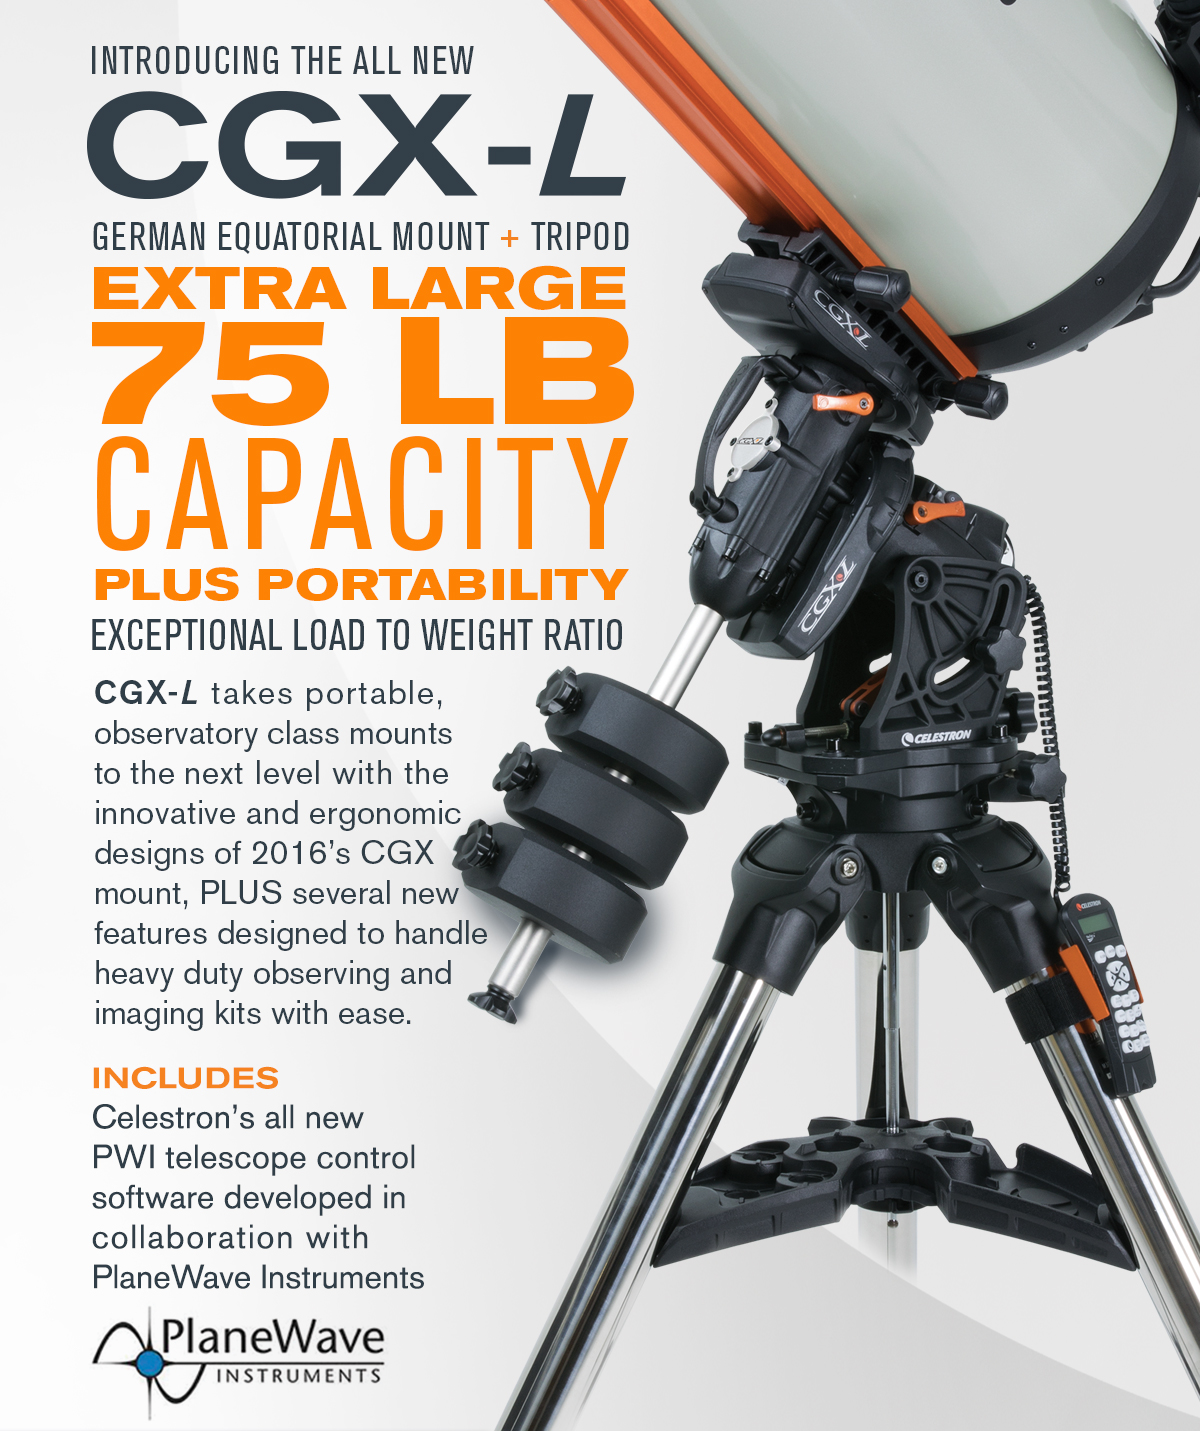 The Brand New Celestron CGX-L